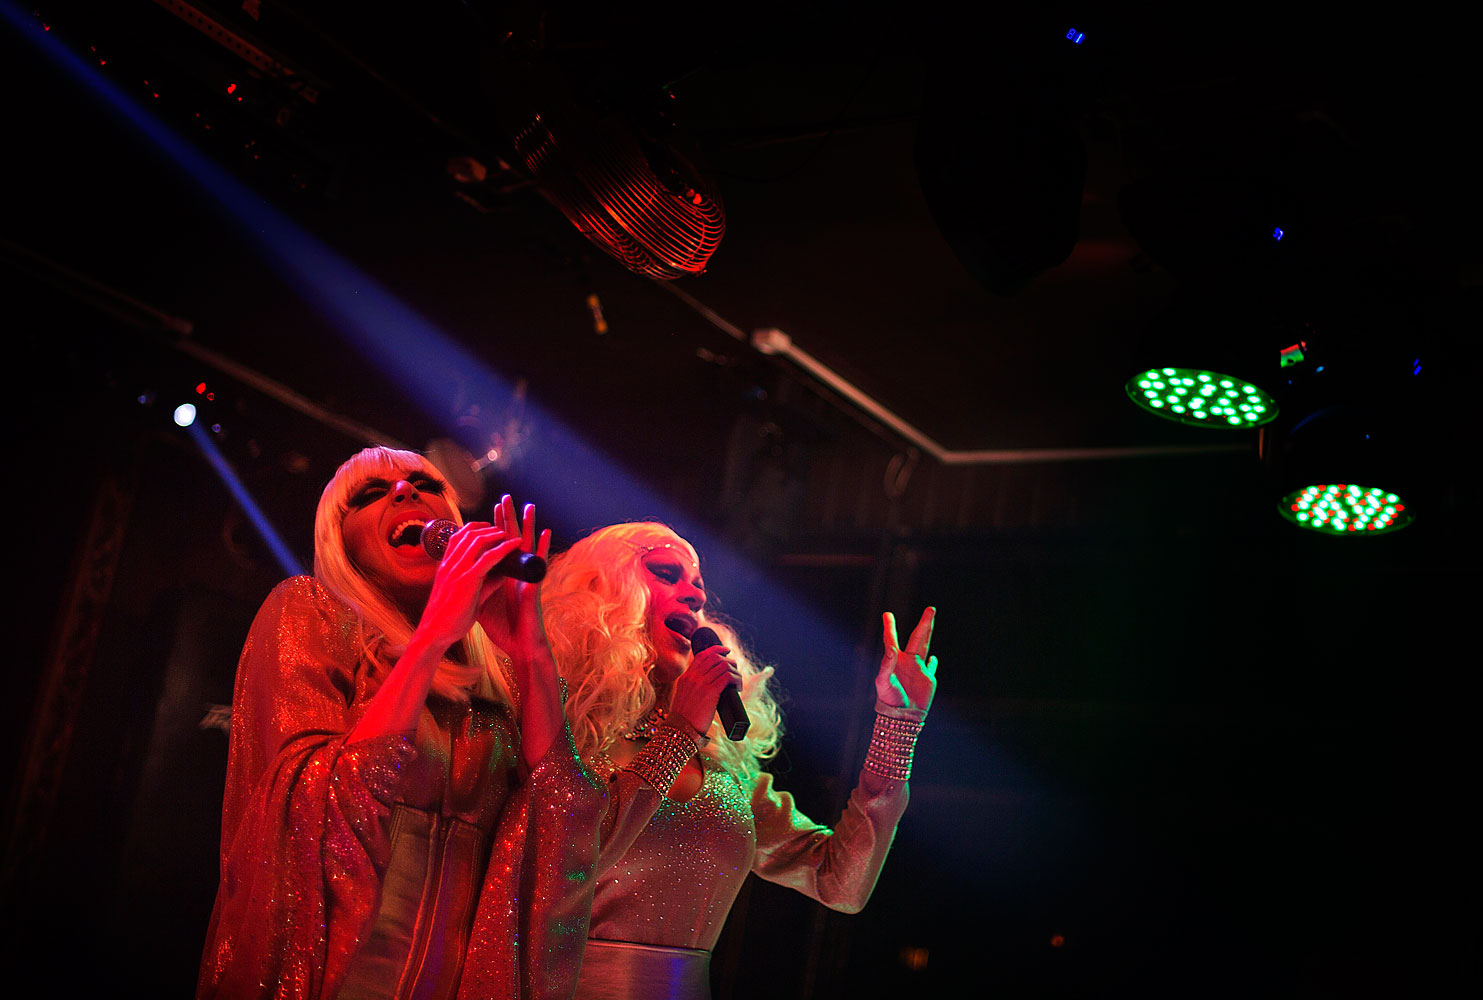 Kira, left, and Lisa, right, who would only give their stage names, perform during a show at the Mayak cabaret in Sochi, Feb. 8, 2014.